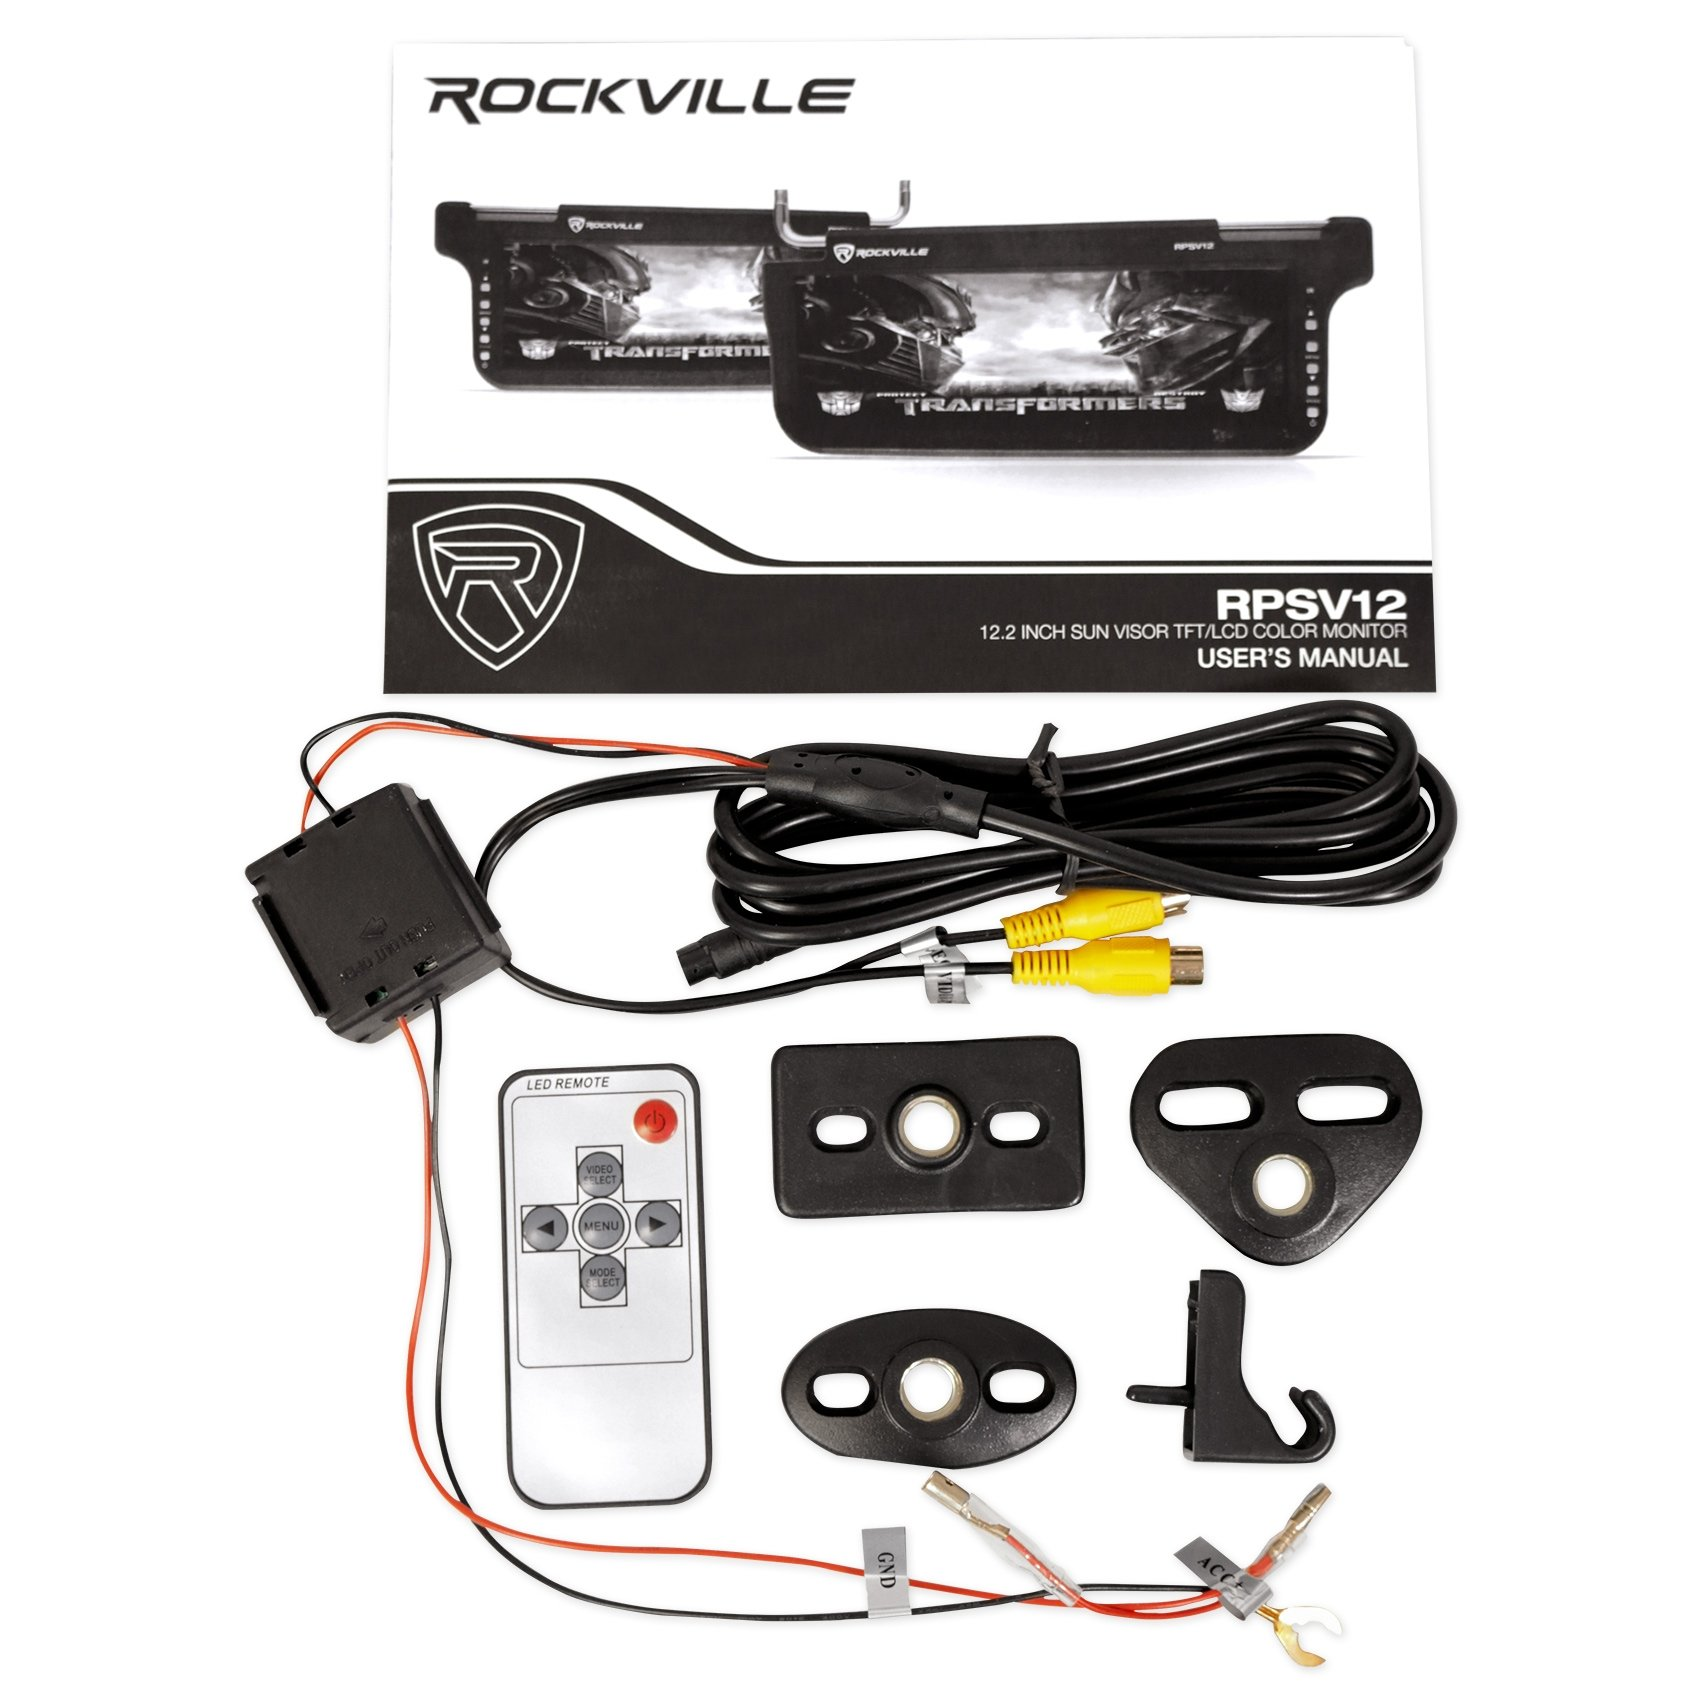 (2) Rockville RPSV12-BK 12.1'' Black Car Sun Visor Monitors/High Definition!